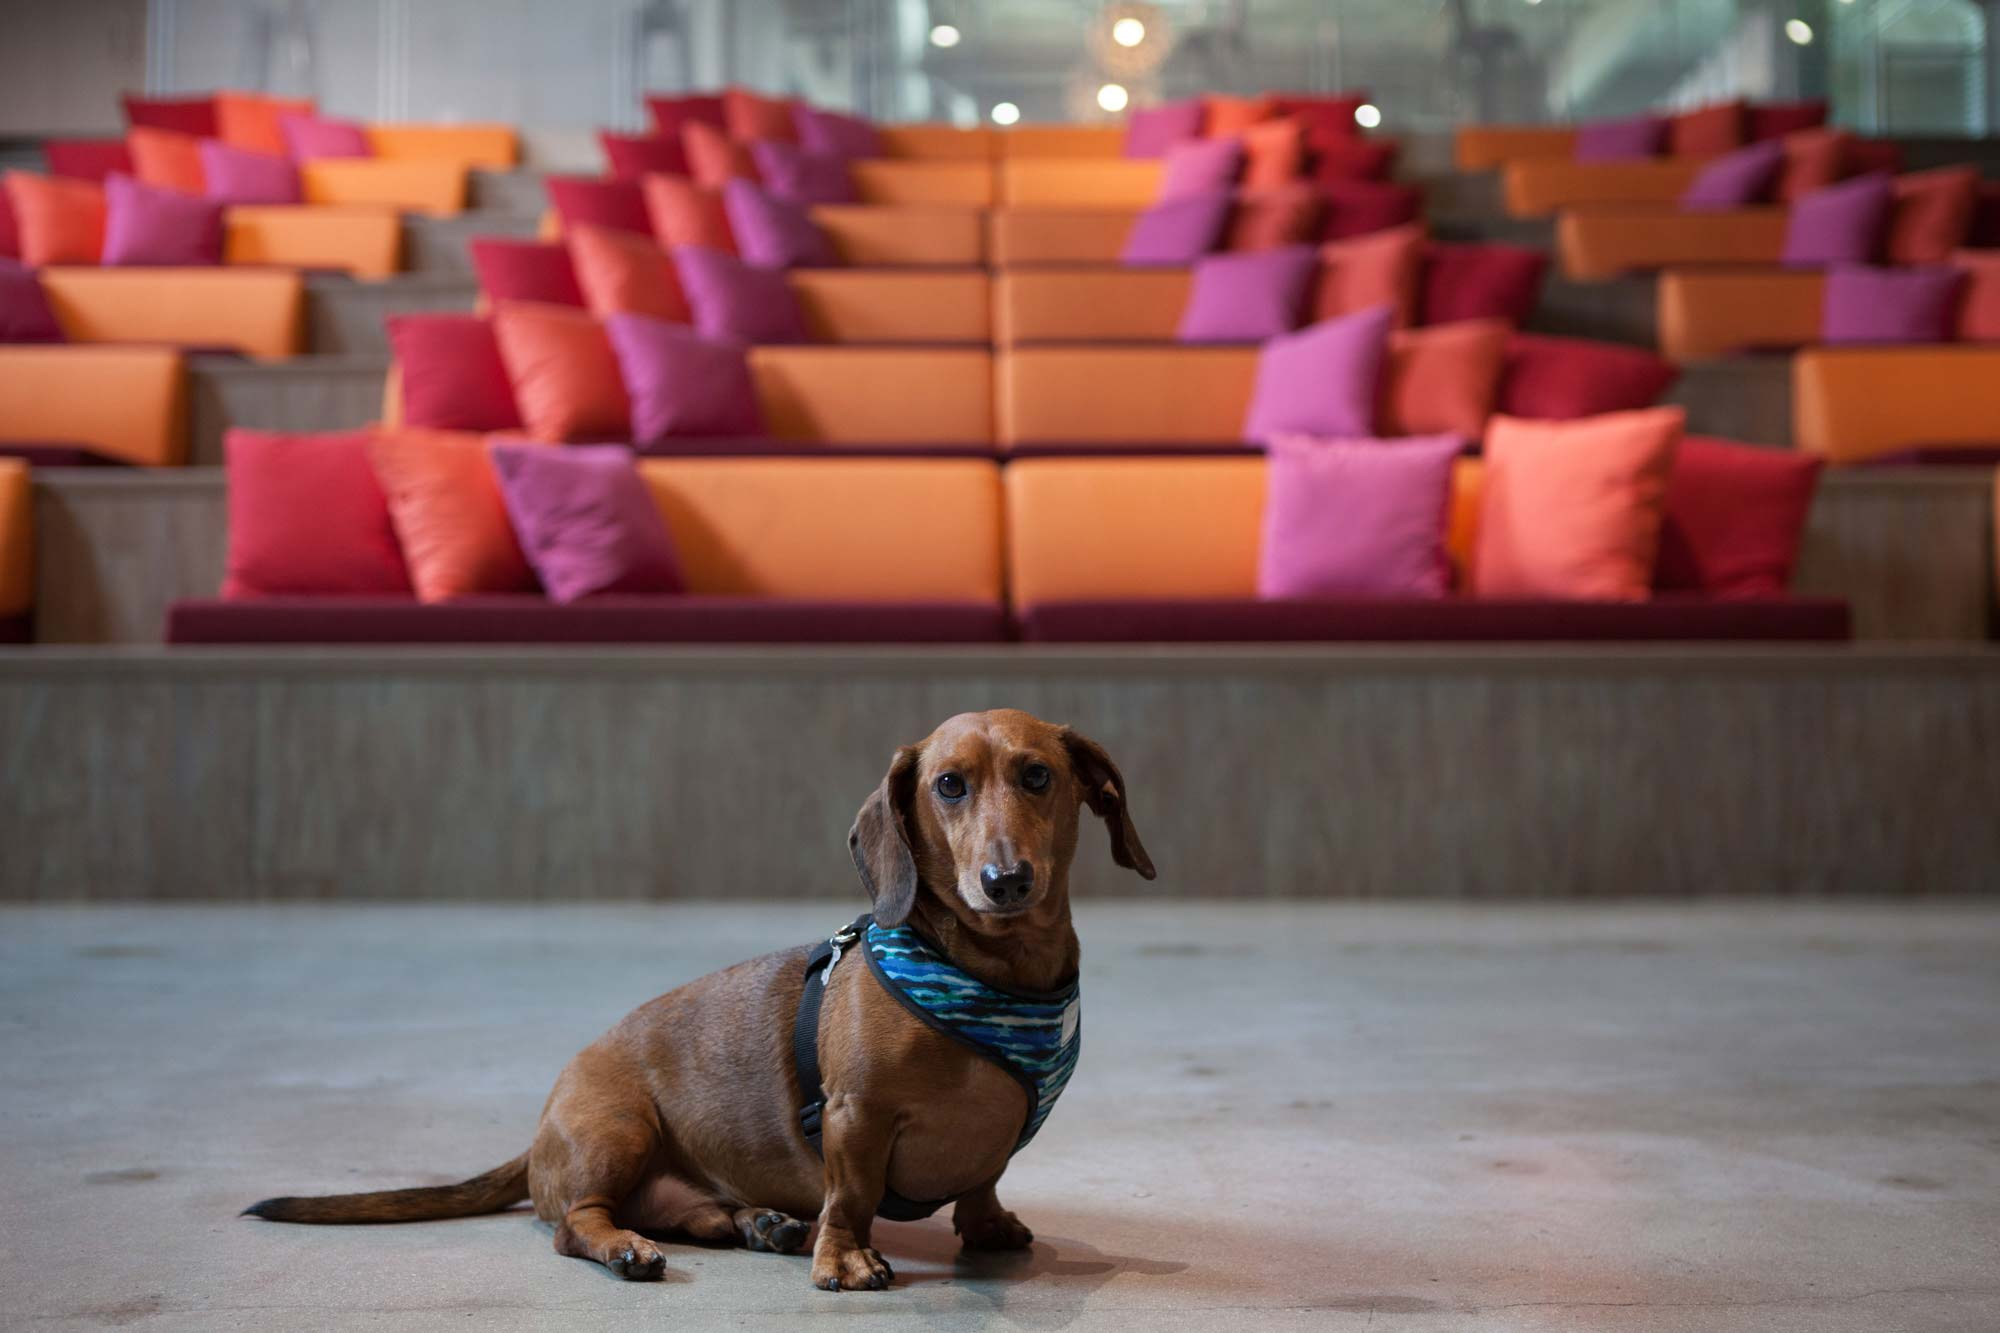 Dachshund in front of colorful benches on stone floor, symmetrical cute photo | Dog Photography | Dog Portrait